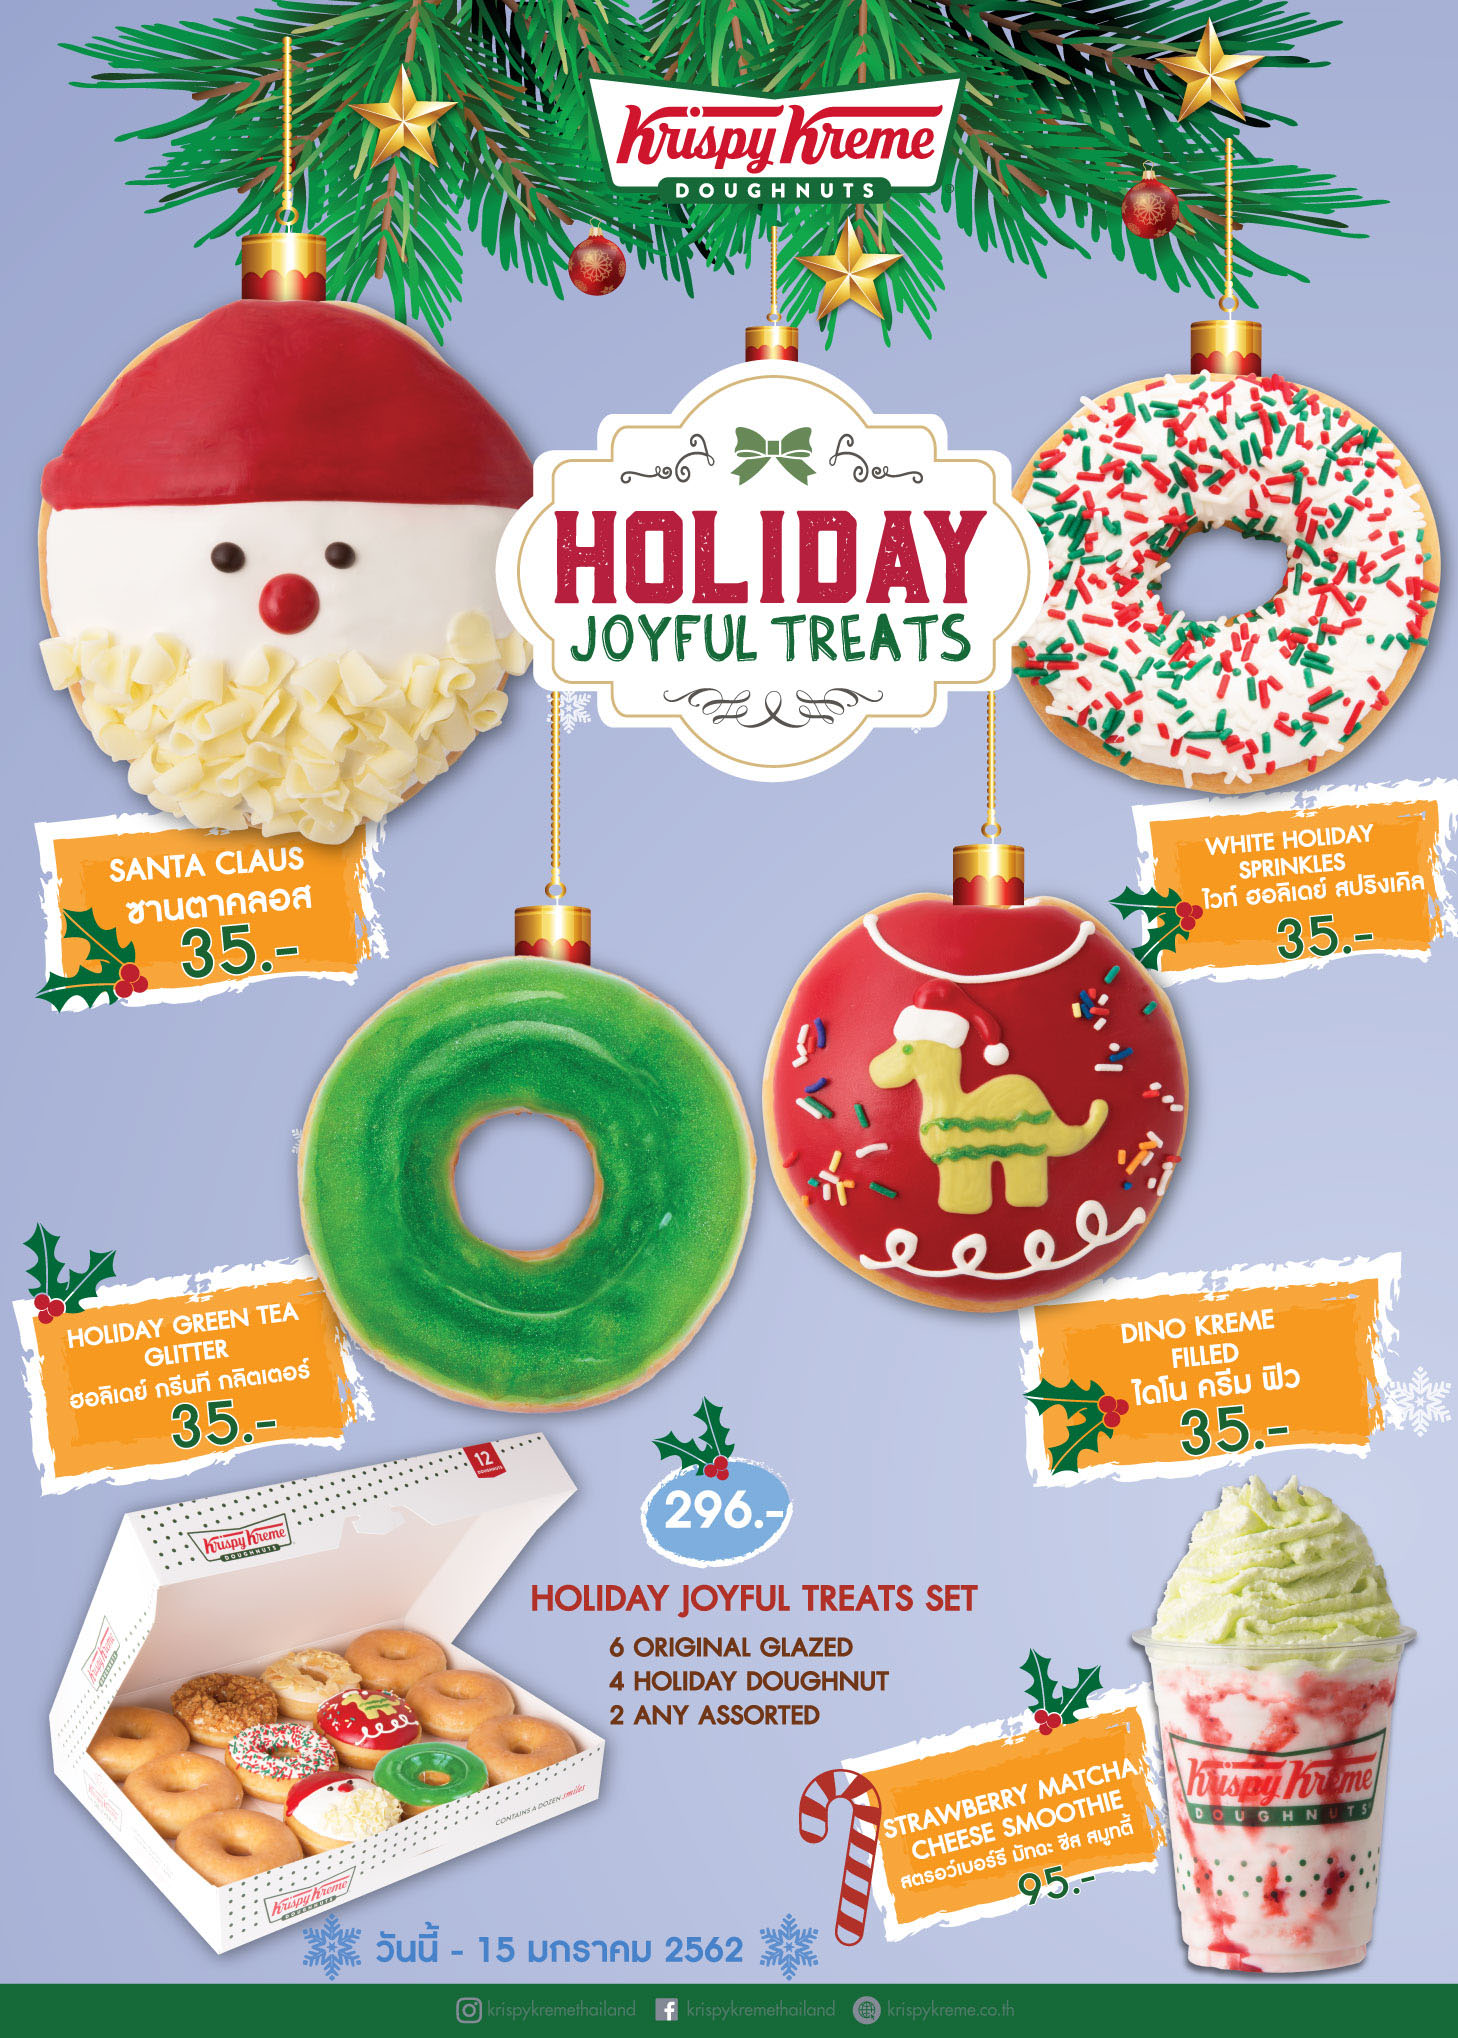 krispykreme_website_11.28.2018_holiday-joy_full